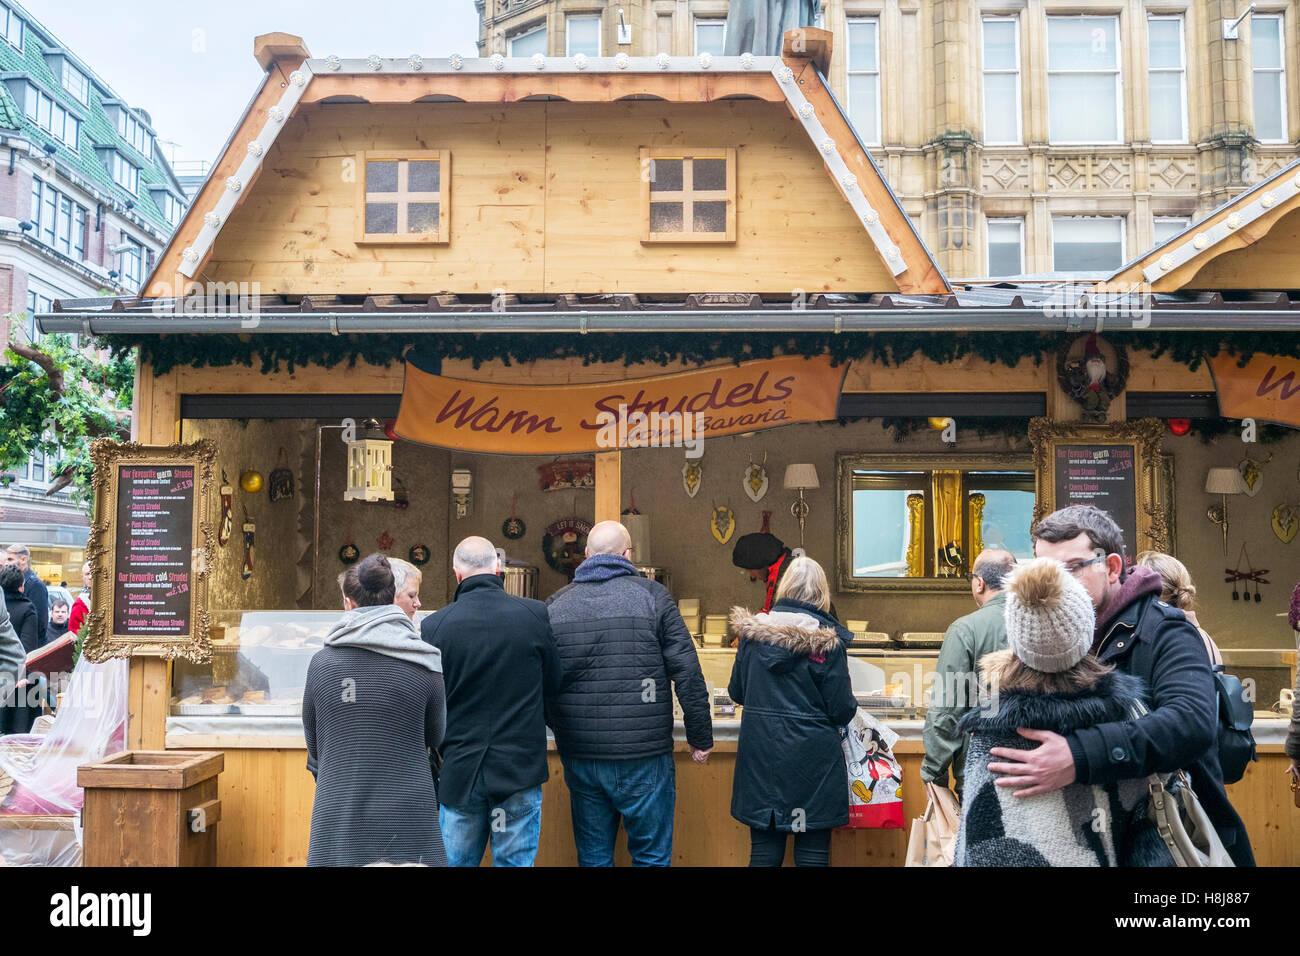 Temporary food stall as part of the Christmas markets in Manchester City centre, UK. - Stock Image